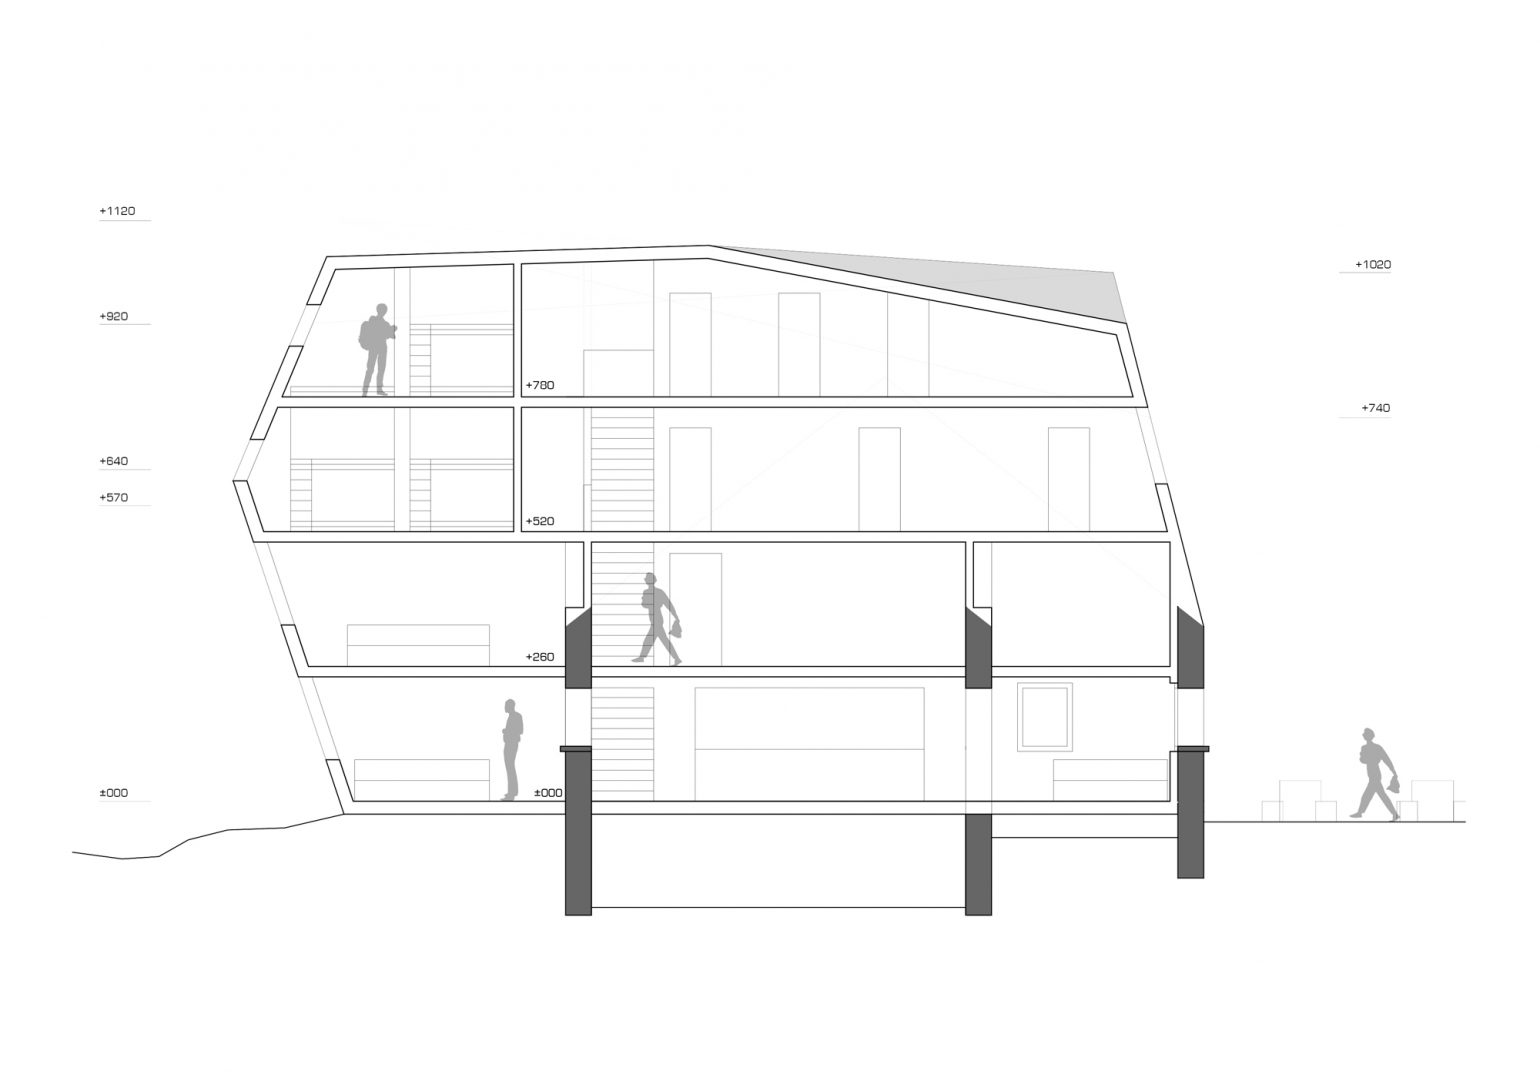 cabane_moiry_grimenz_meyer_architecture_sion_04